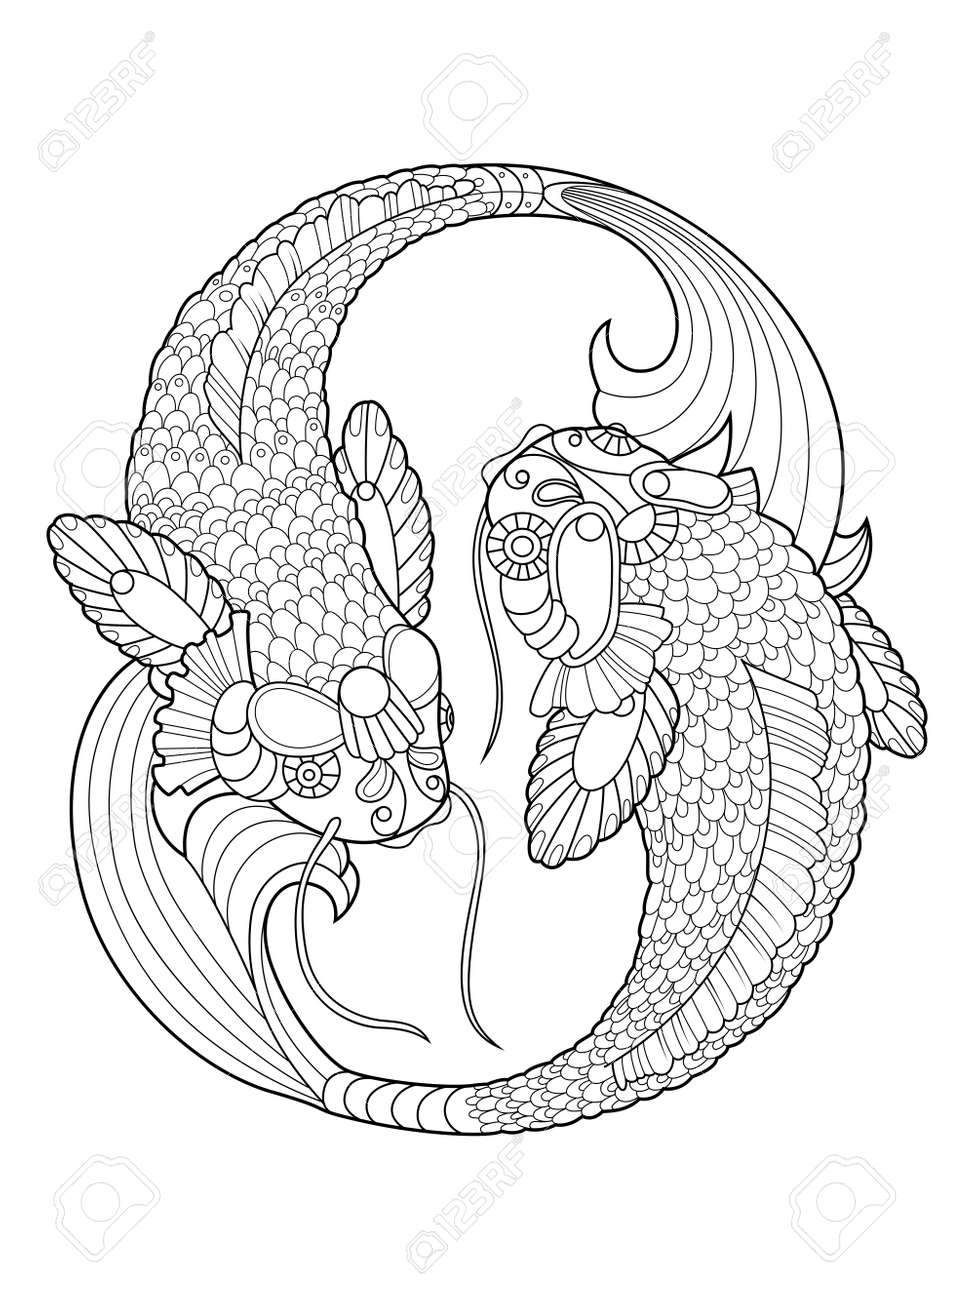 - Koi Carp Fish Coloring Book For Adults Vector Illustration. Anti